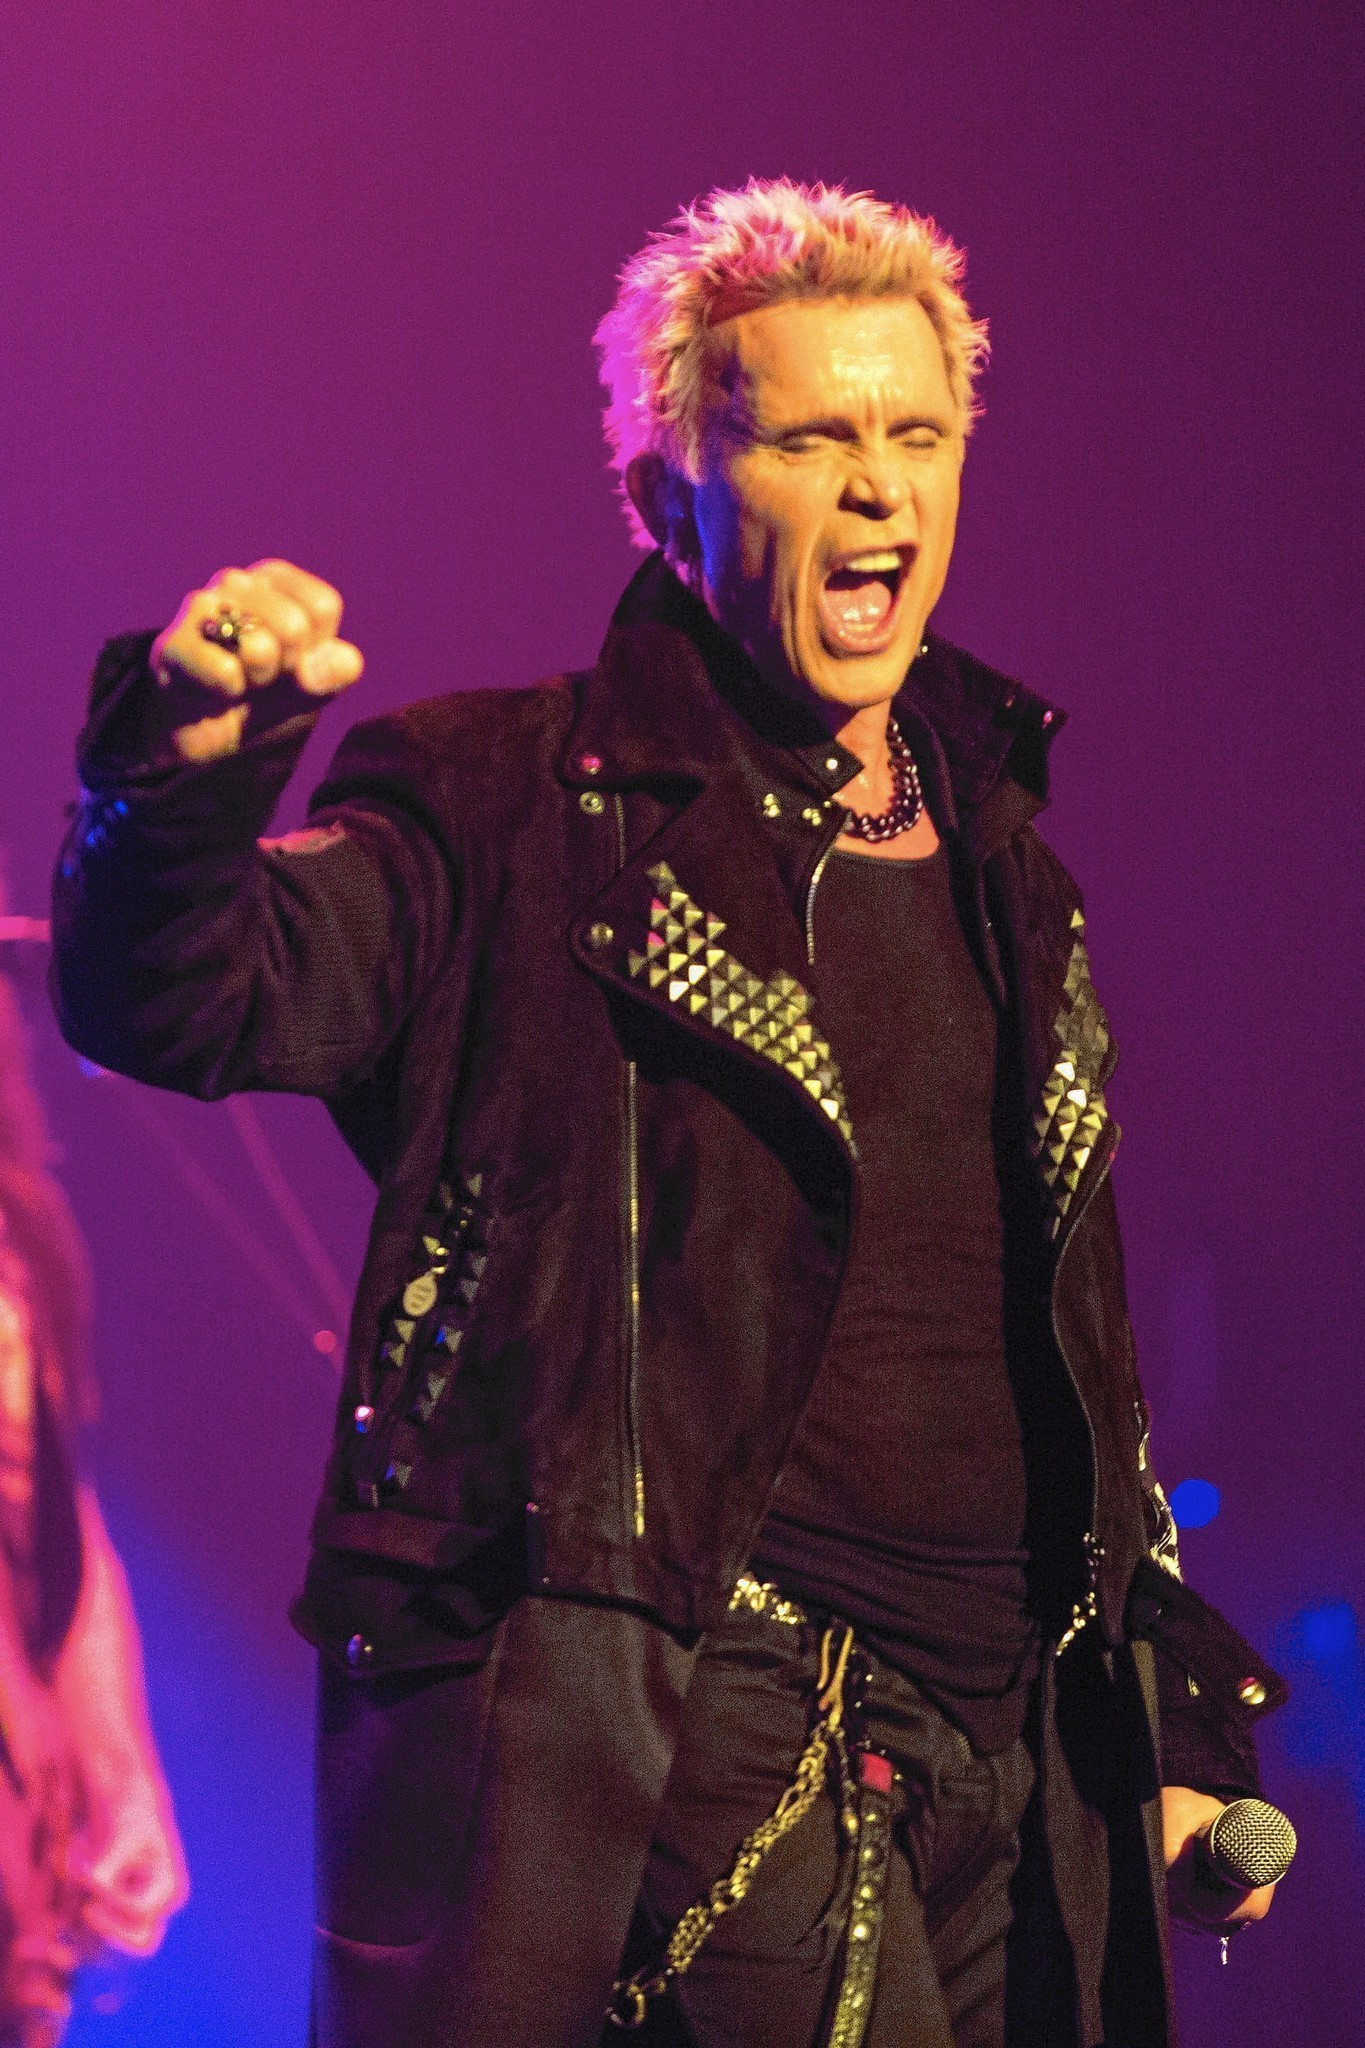 Billy Idol sued for standing up groupie